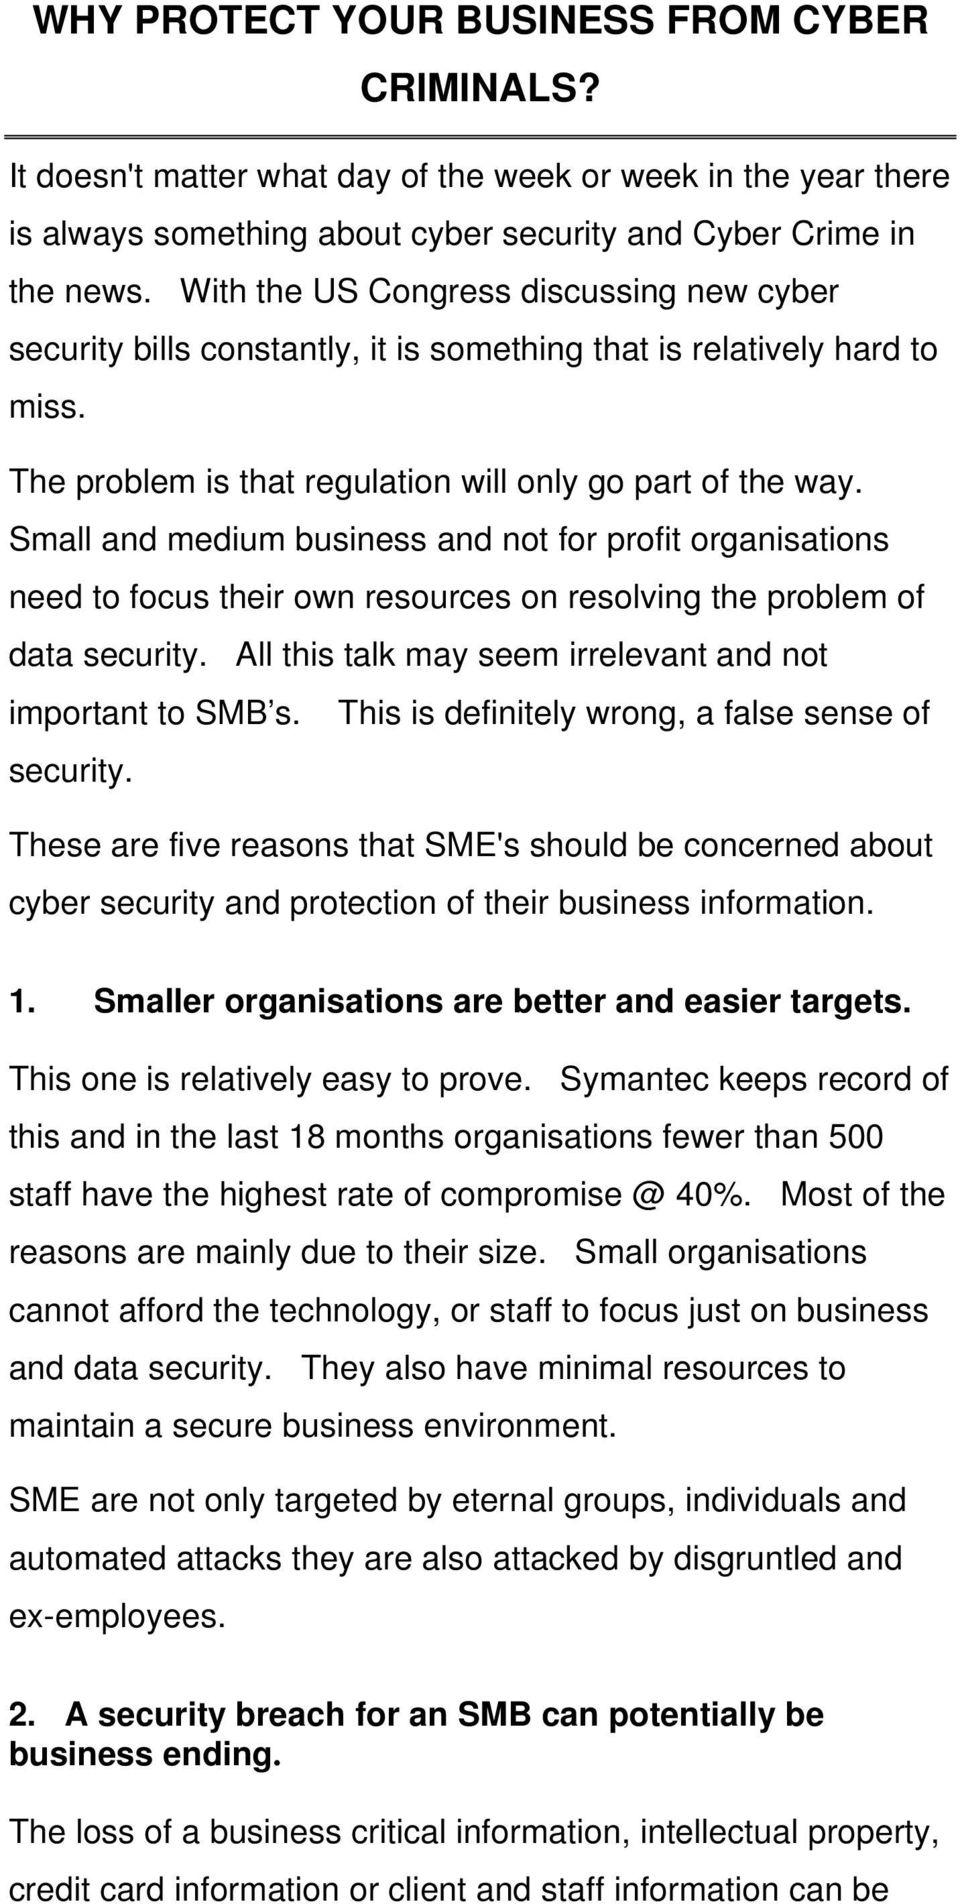 Small and medium business and not for profit organisations need to focus their own resources on resolving the problem of data security. All this talk may seem irrelevant and not important to SMB s.